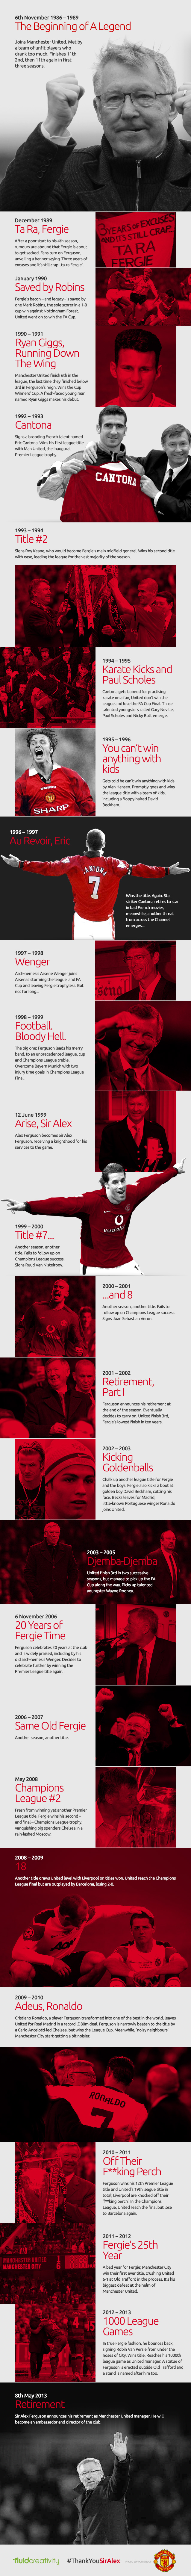 A Timeline Tribute To Sir Alex Ferguson